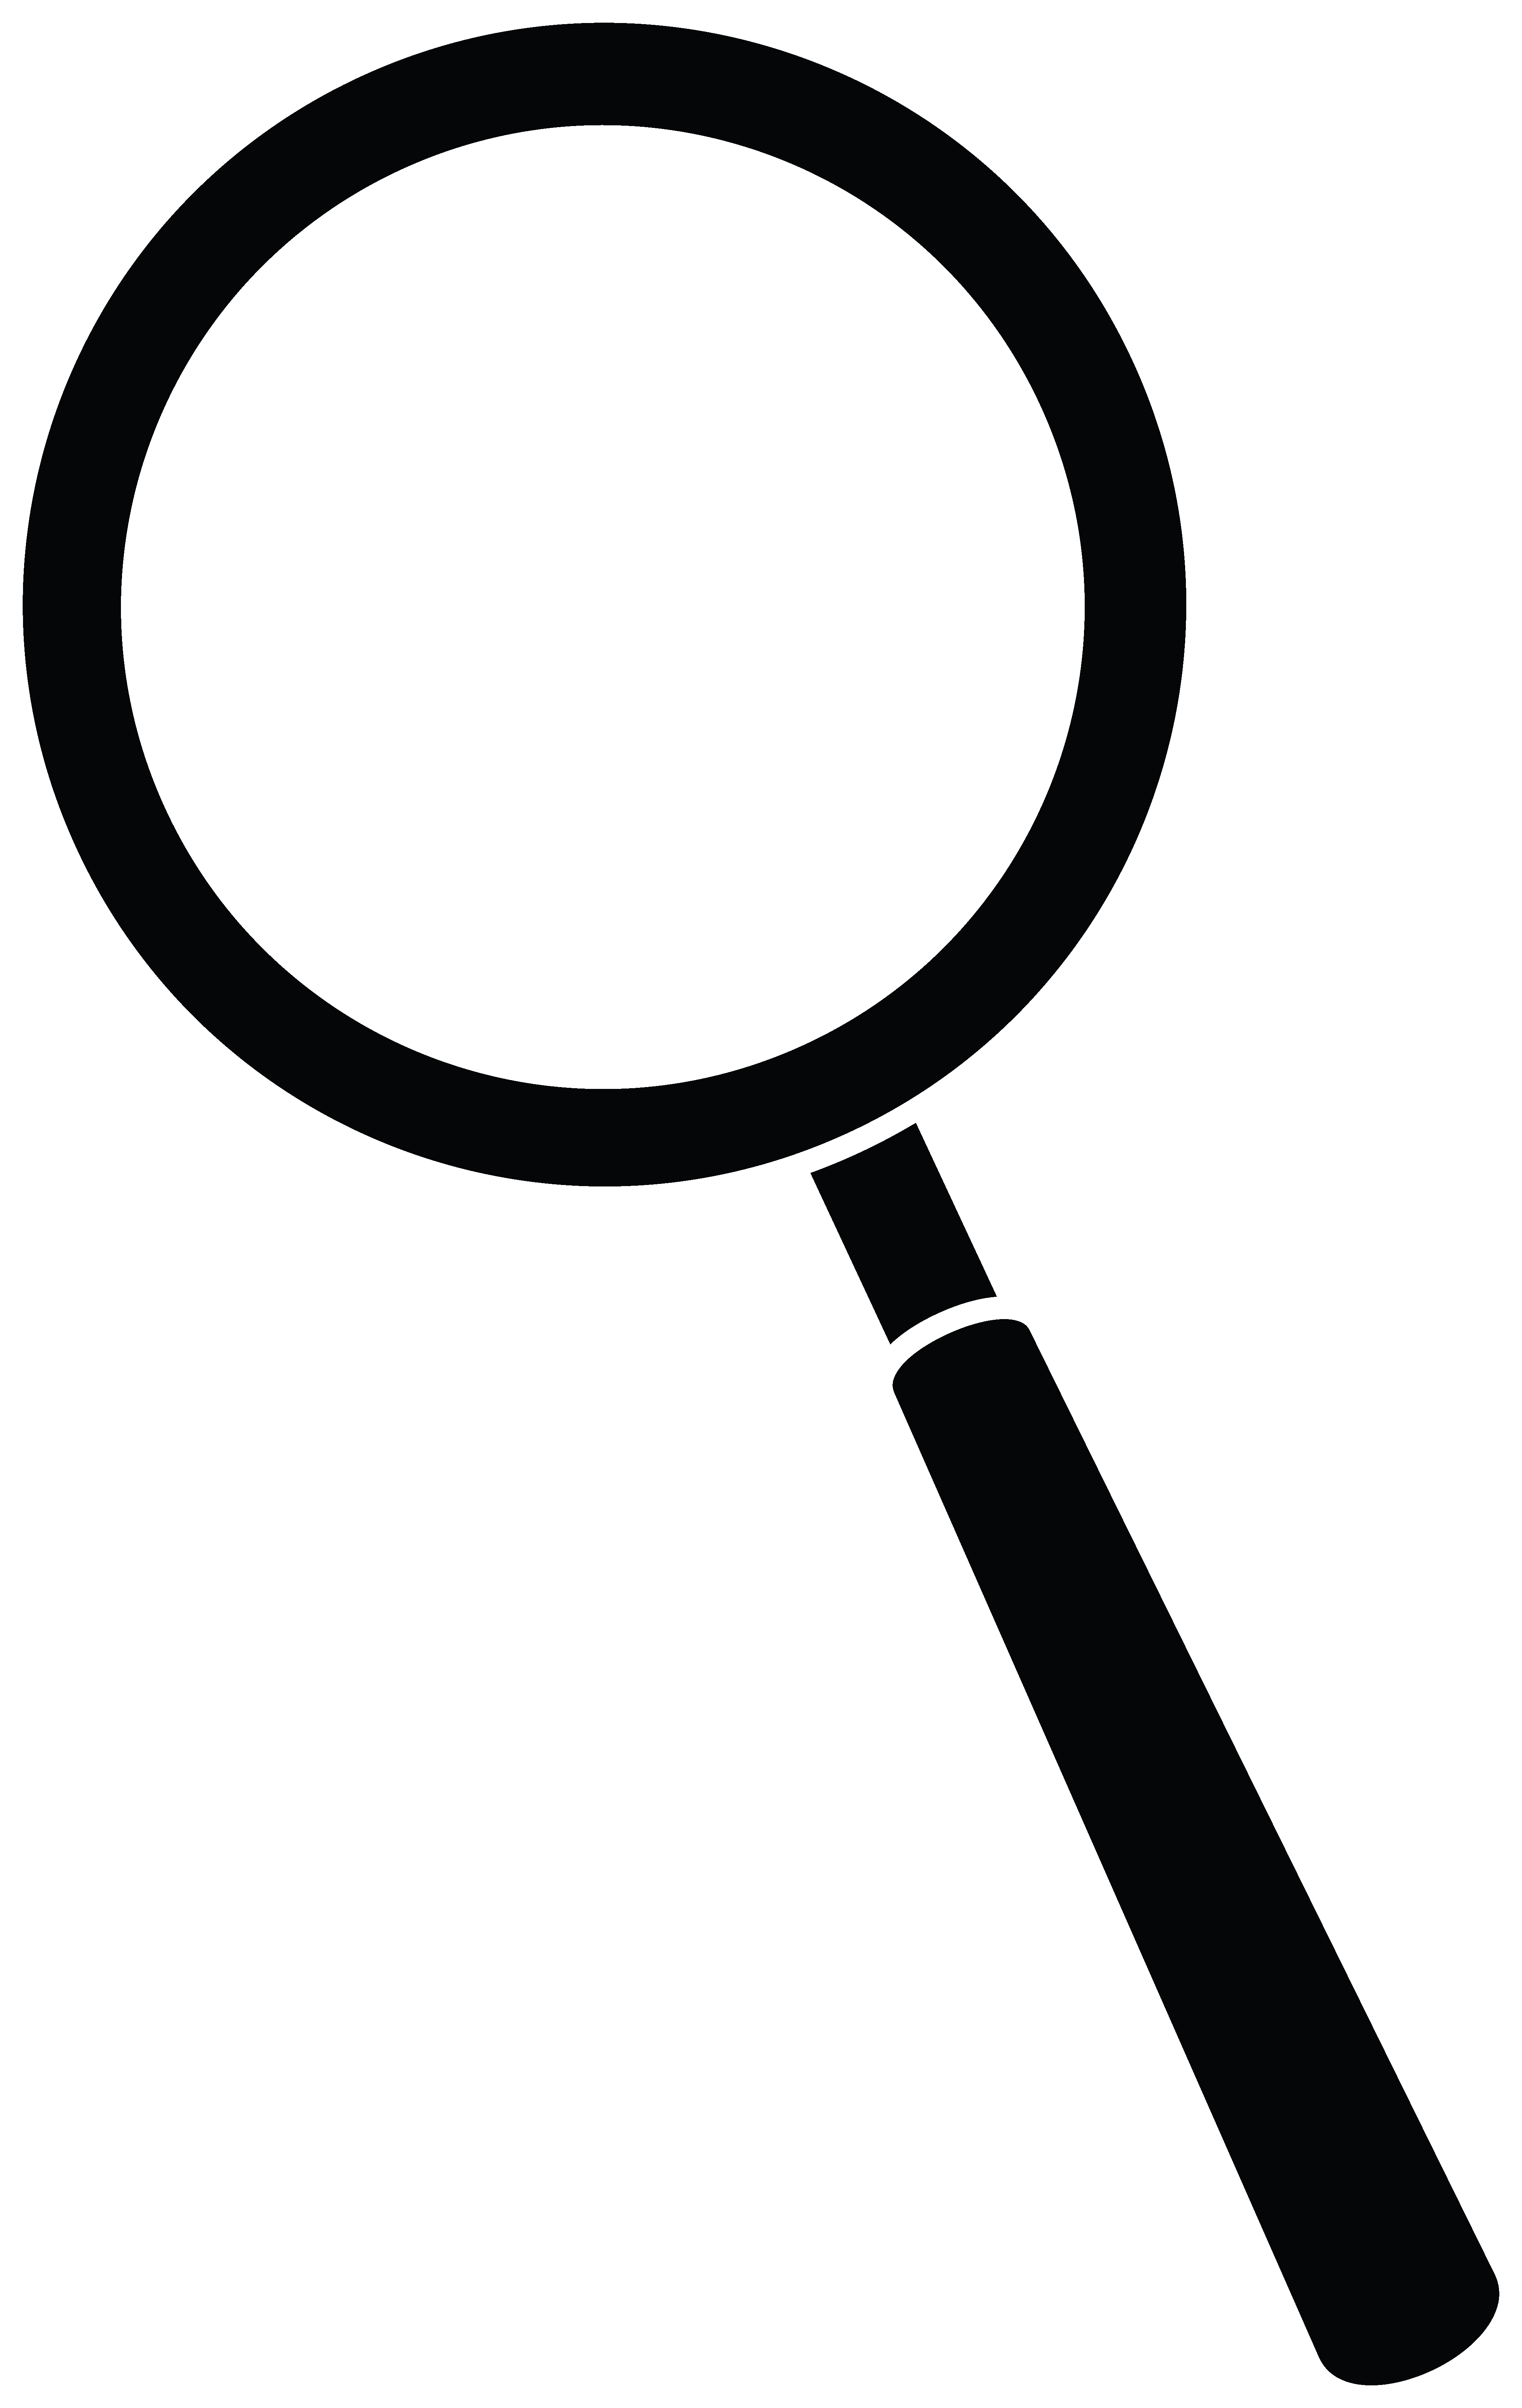 Png Magnifying Glass Detective - Magnifying Glass Detective, Transparent background PNG HD thumbnail